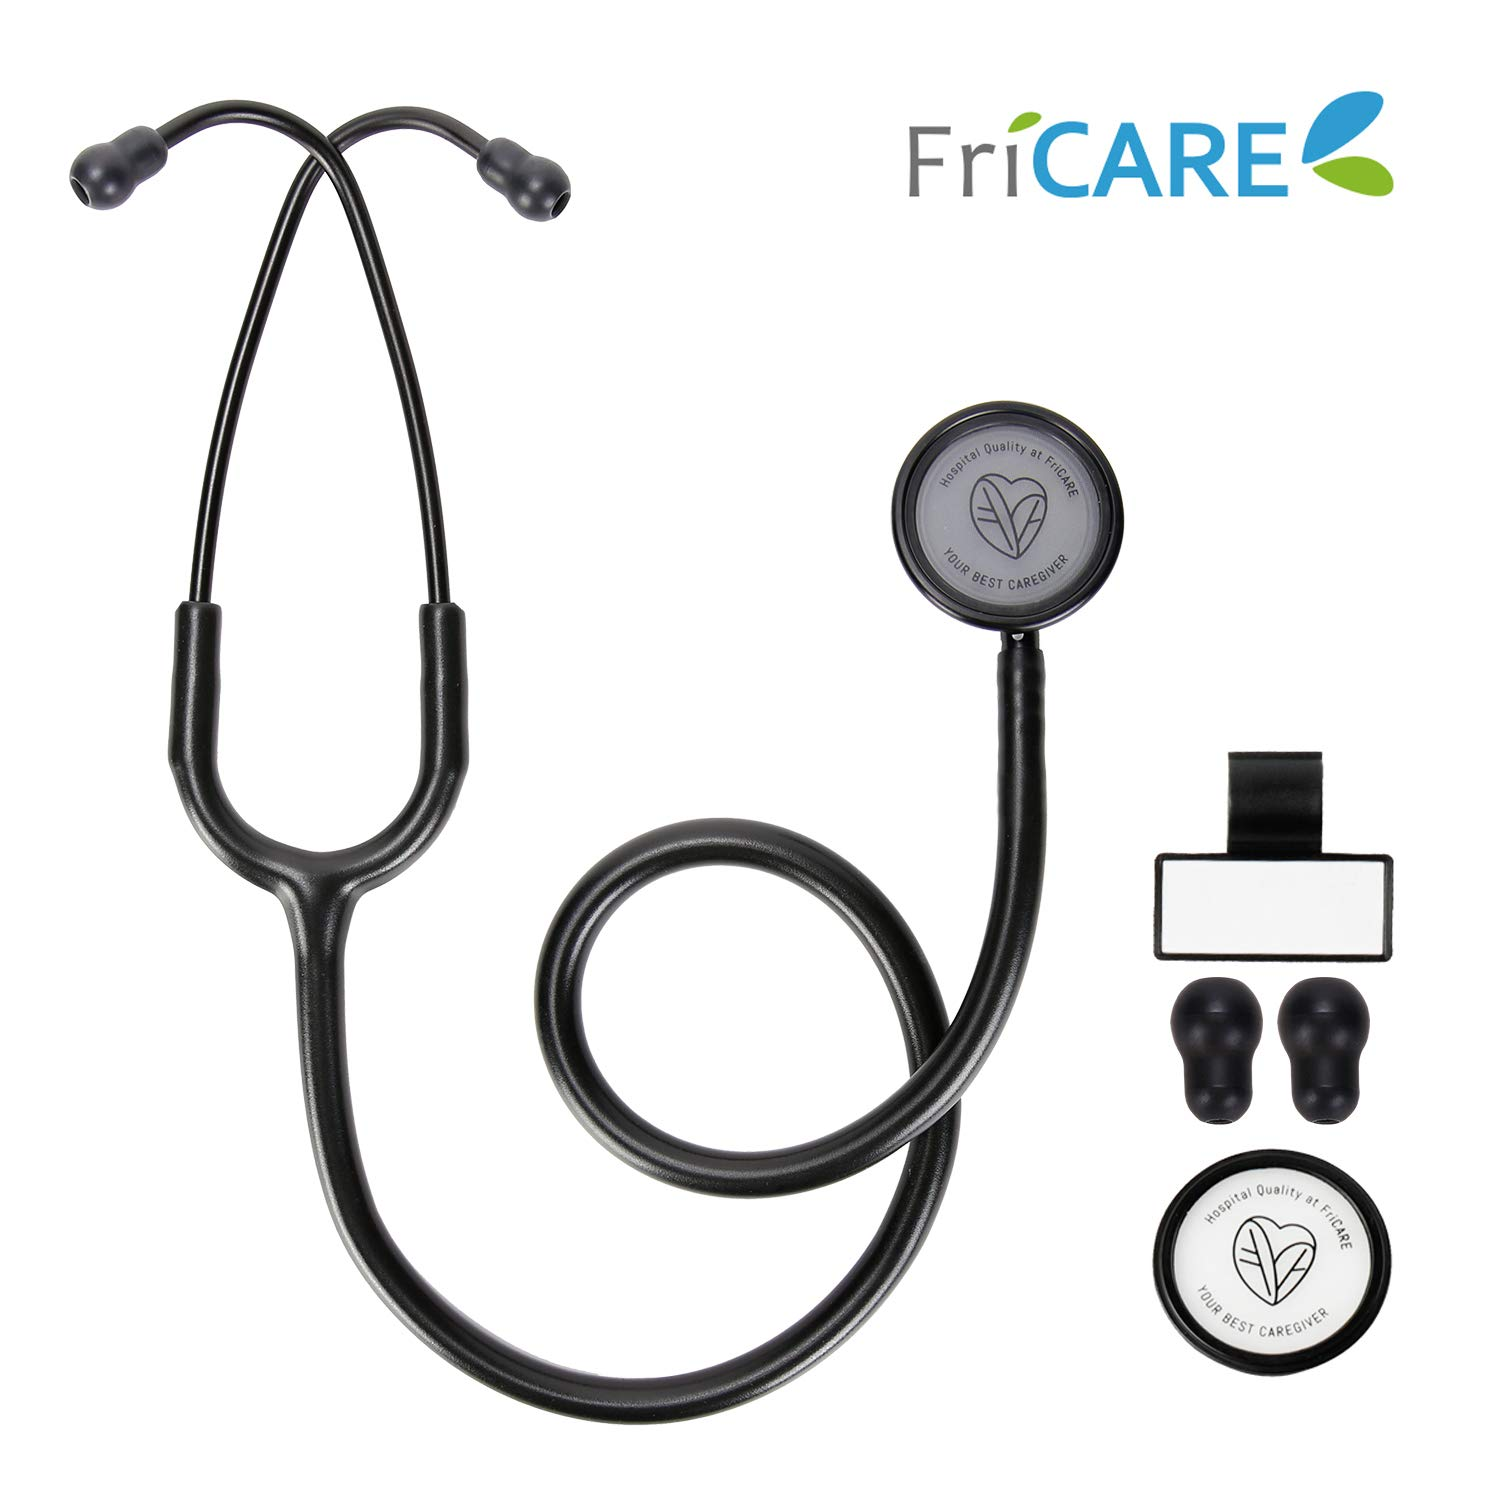 FriCARE Lightweight Dual Head Stethoscope for Medical Professionals Doctors, Aluminum Chestpiece and Headset, All Black Matte Finish Tube by FriCARE